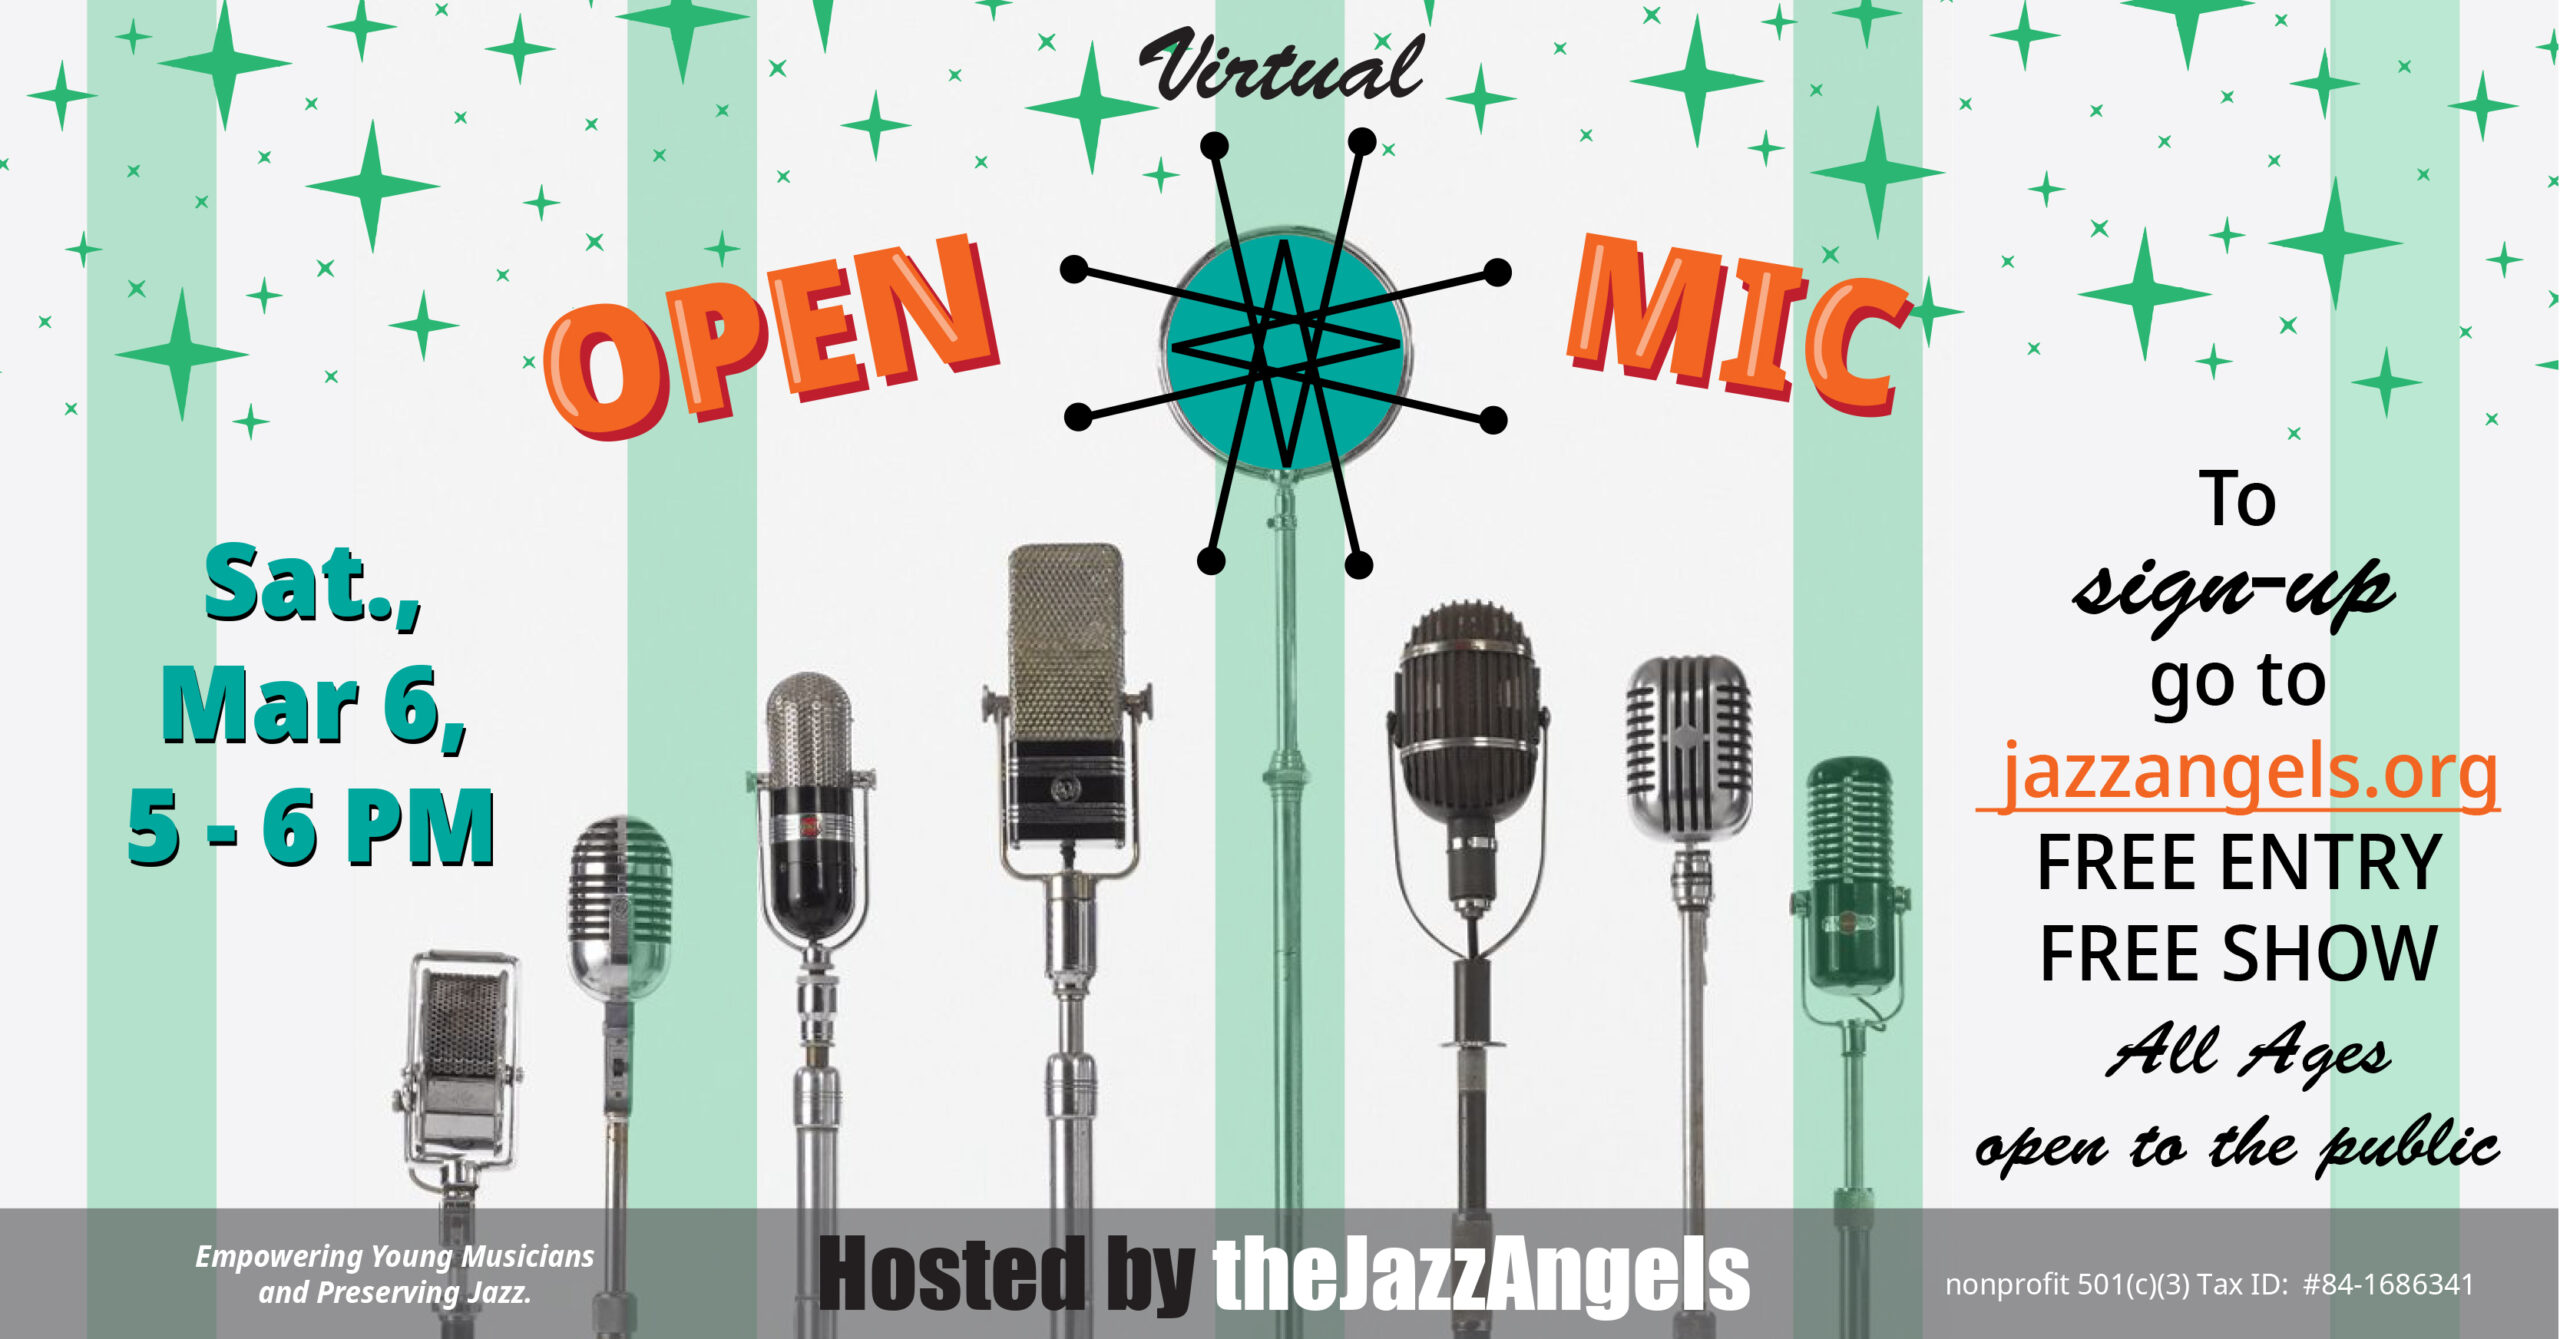 Virtual Open Mic May 6th from 5-6pm.